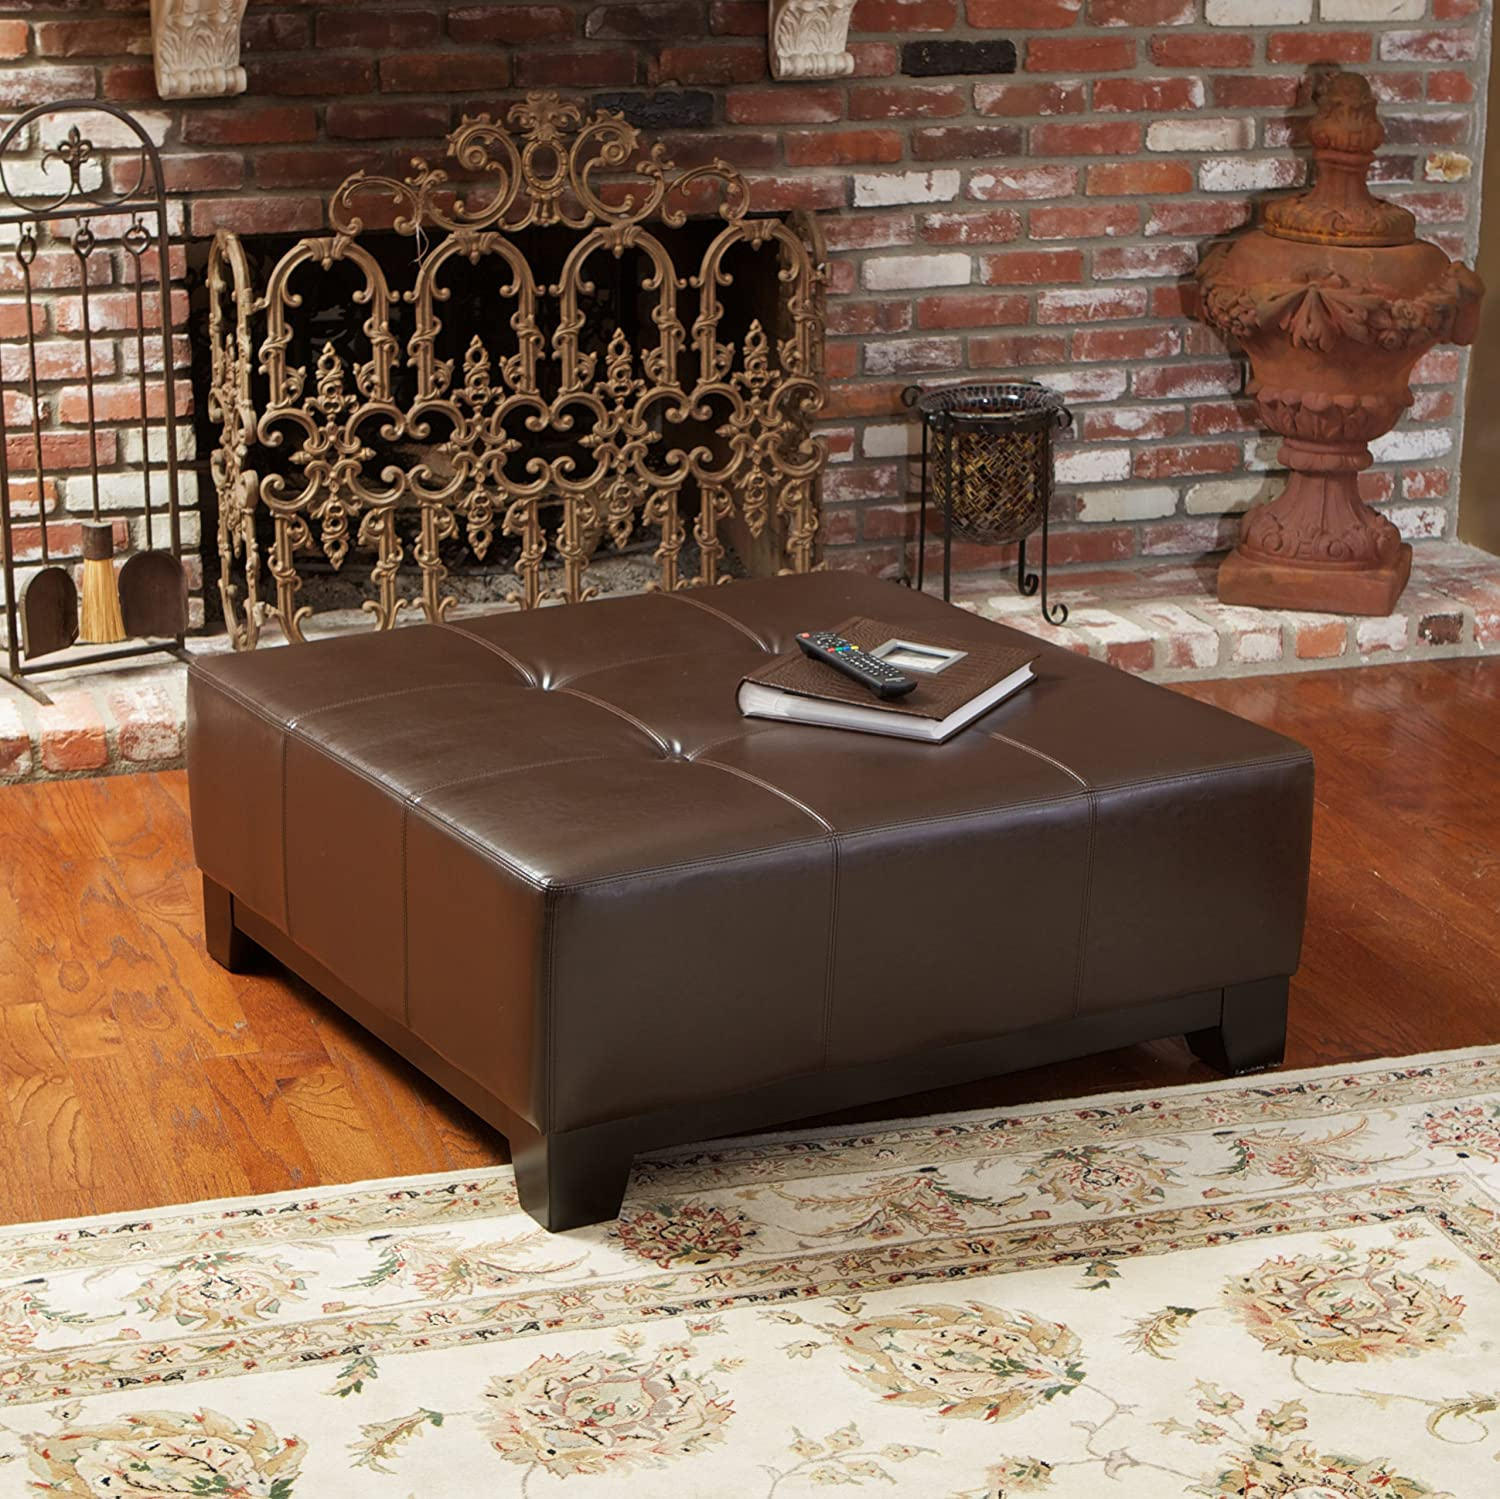 Large ottomans as coffee tables 48x48 - Large Ottomans As Coffee Tables 48x48 41